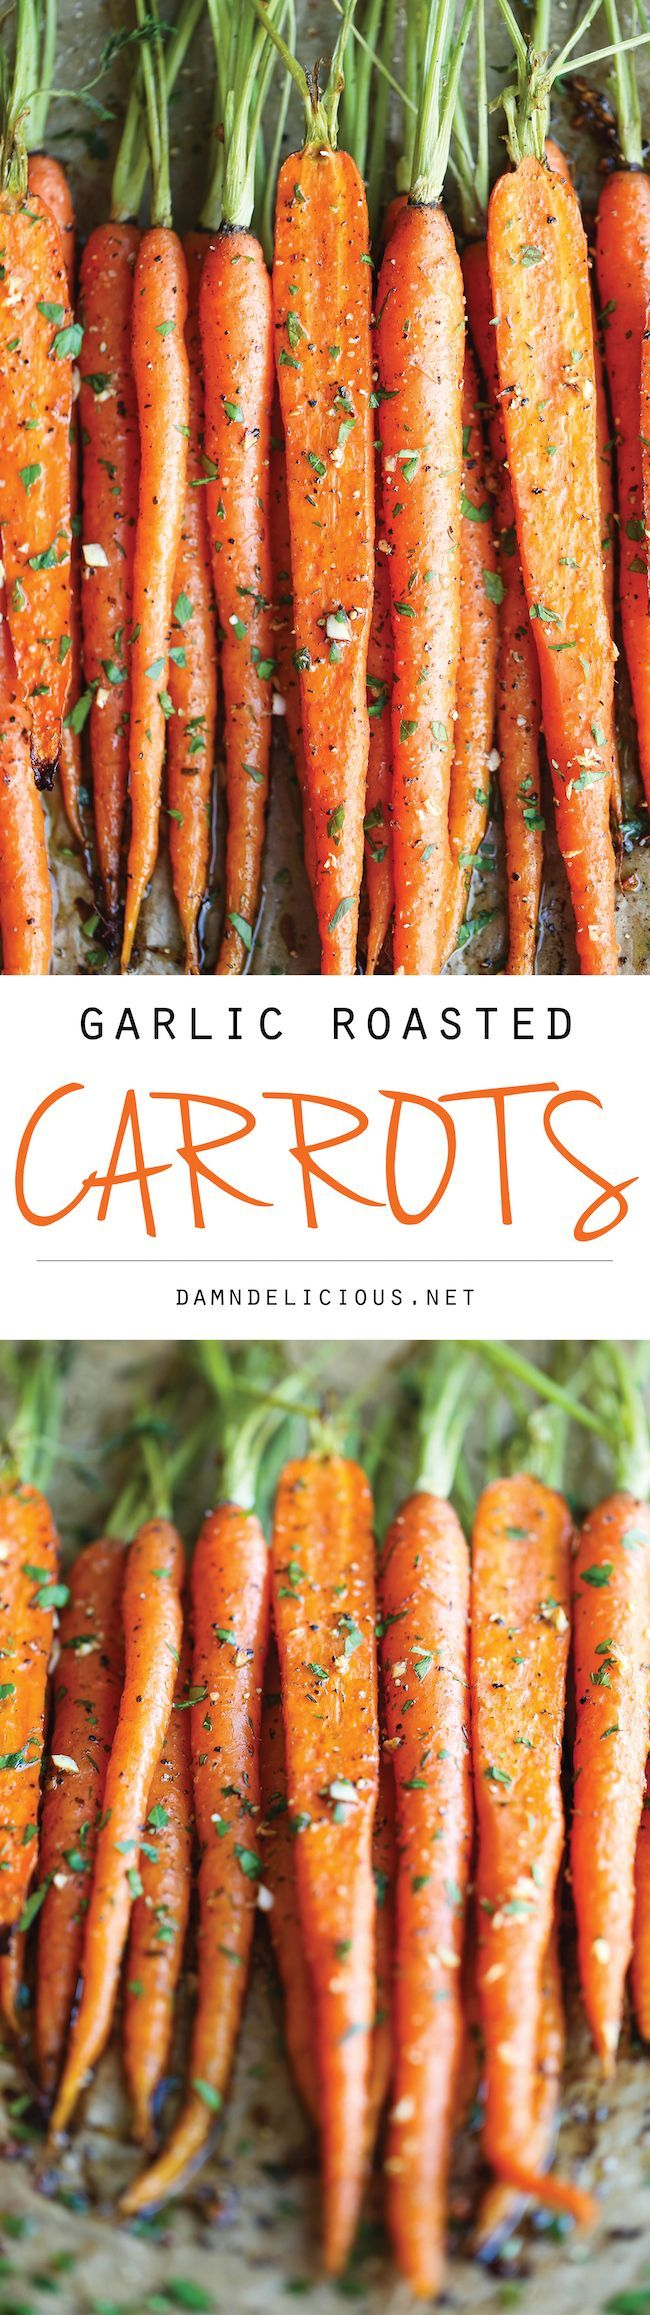 Garlic Roasted Carrots - This is really the best and easiest way to roast carrots. All you need is 5 min prep. It's just that quick and easy! 59.5 calories.